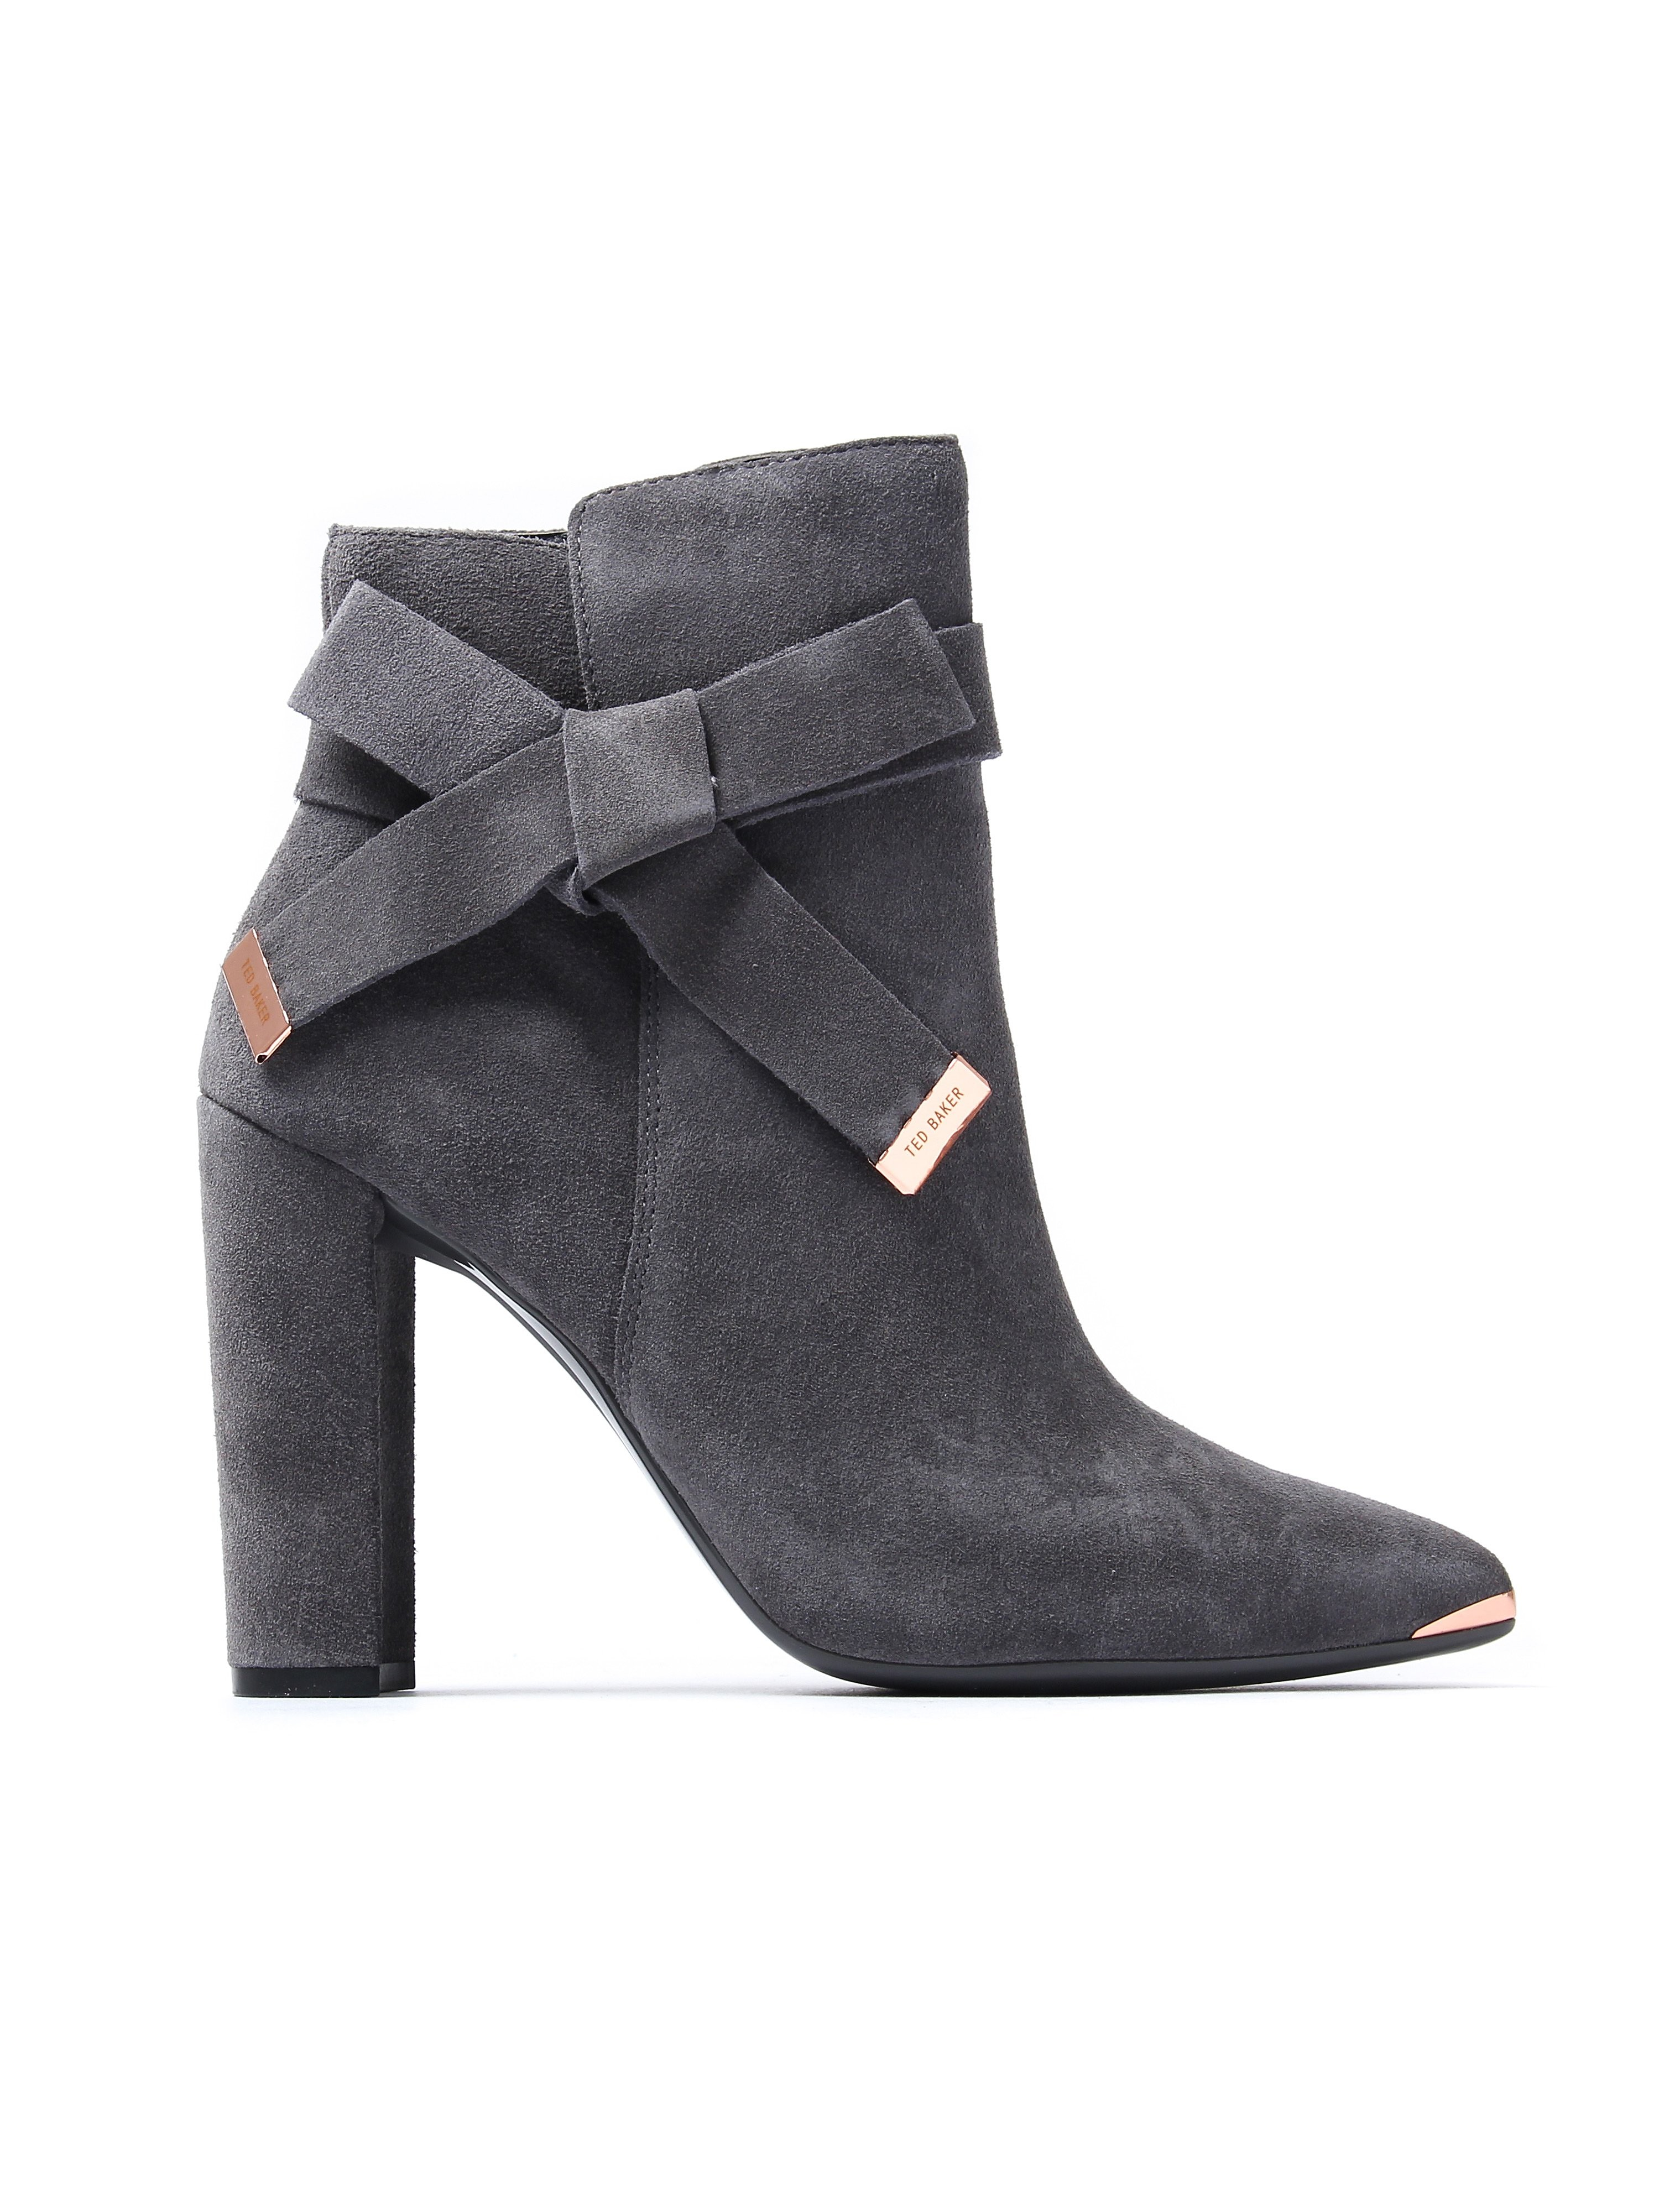 Ted Baker Women's Sailly Ankle Boots - Dark Grey Suede